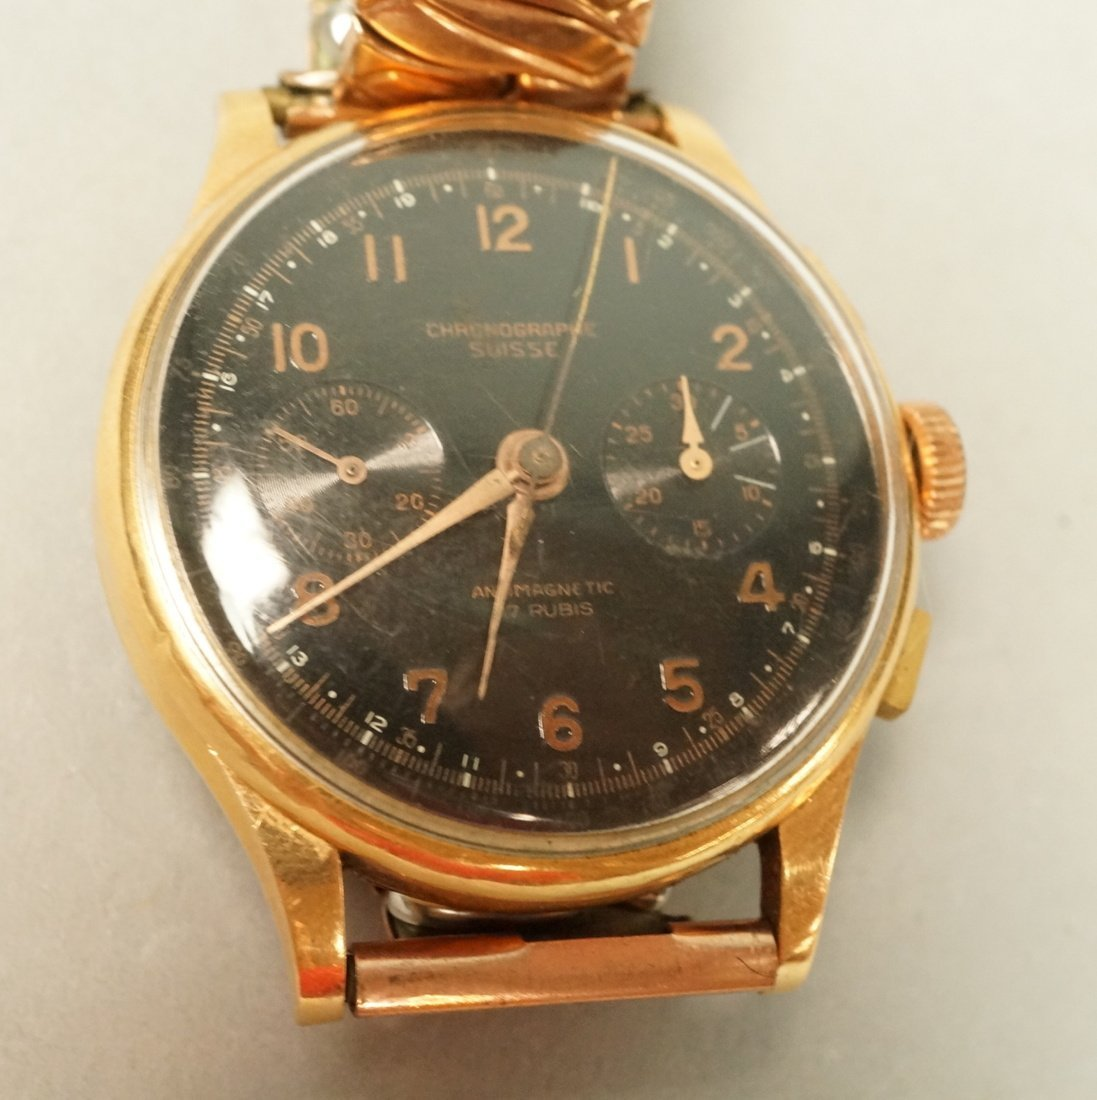 18K Gold Chronographe Suisse Wrist Watch.  Large